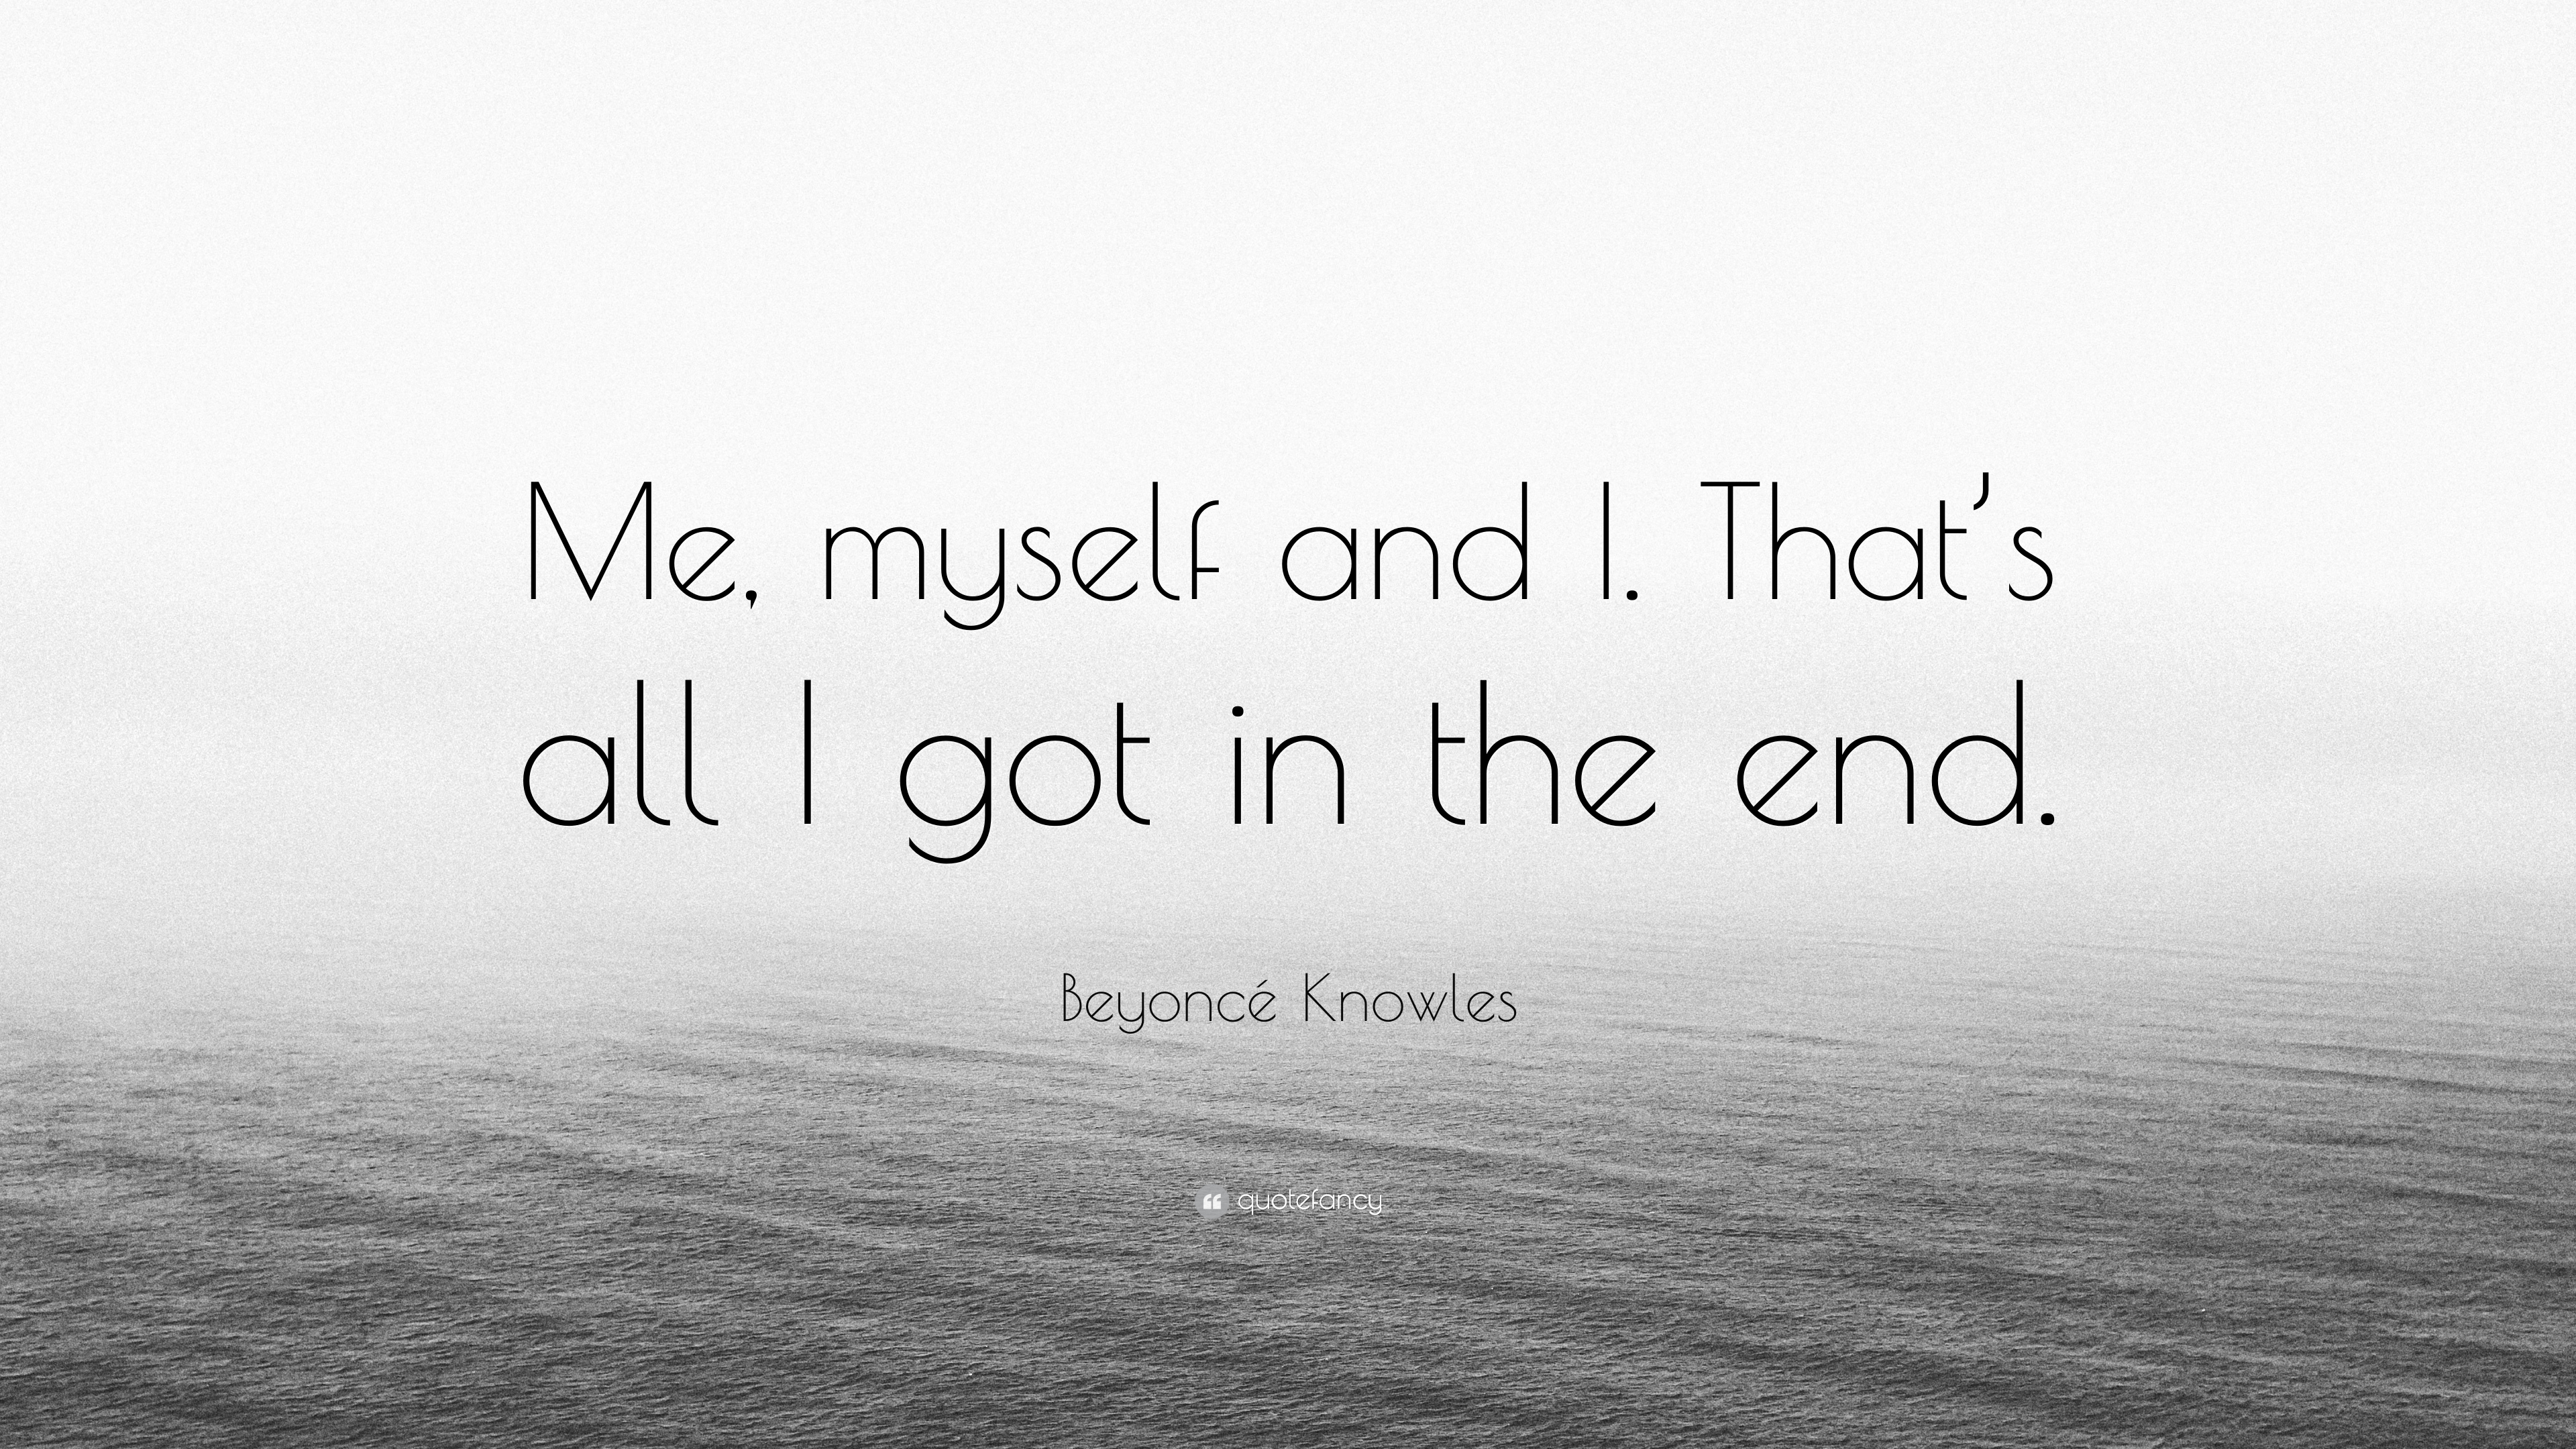 Beyonce Knowles Quote Me Myself And I That S All I Got In The End 7 Wallpapers Quotefancy